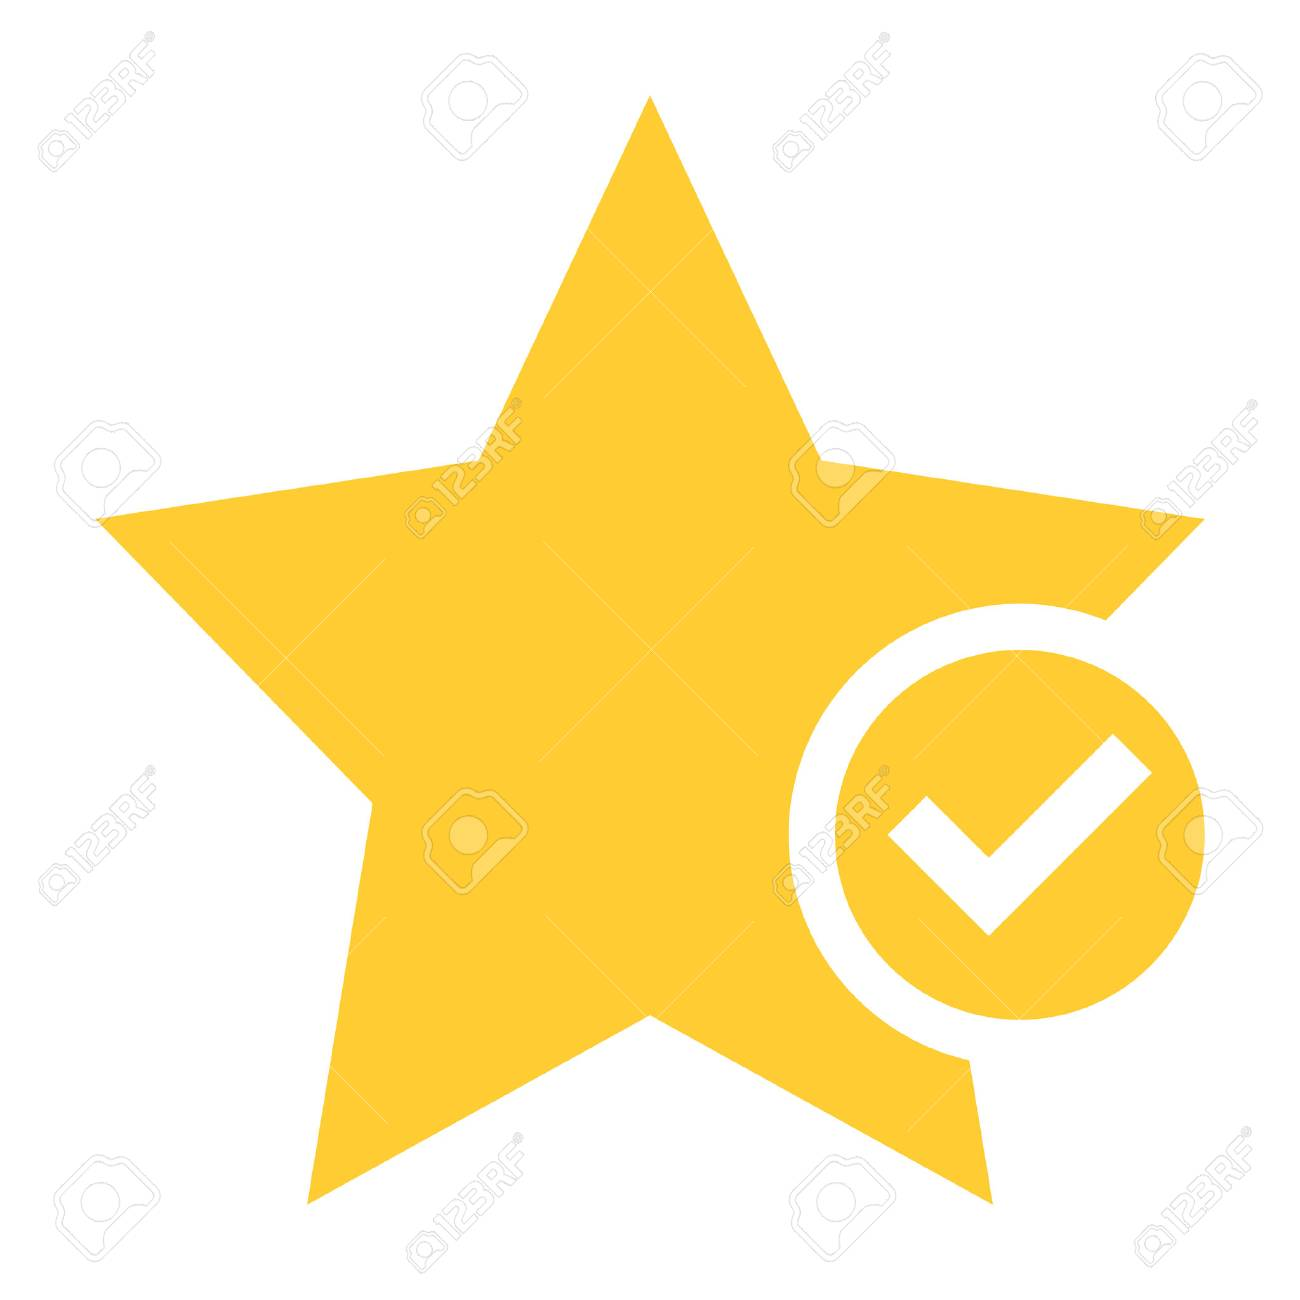 Flat star icon favorite sign bookmark yellow gold button with check mark pictogram. Vector illustration a graphic element for web internet design - 85723174